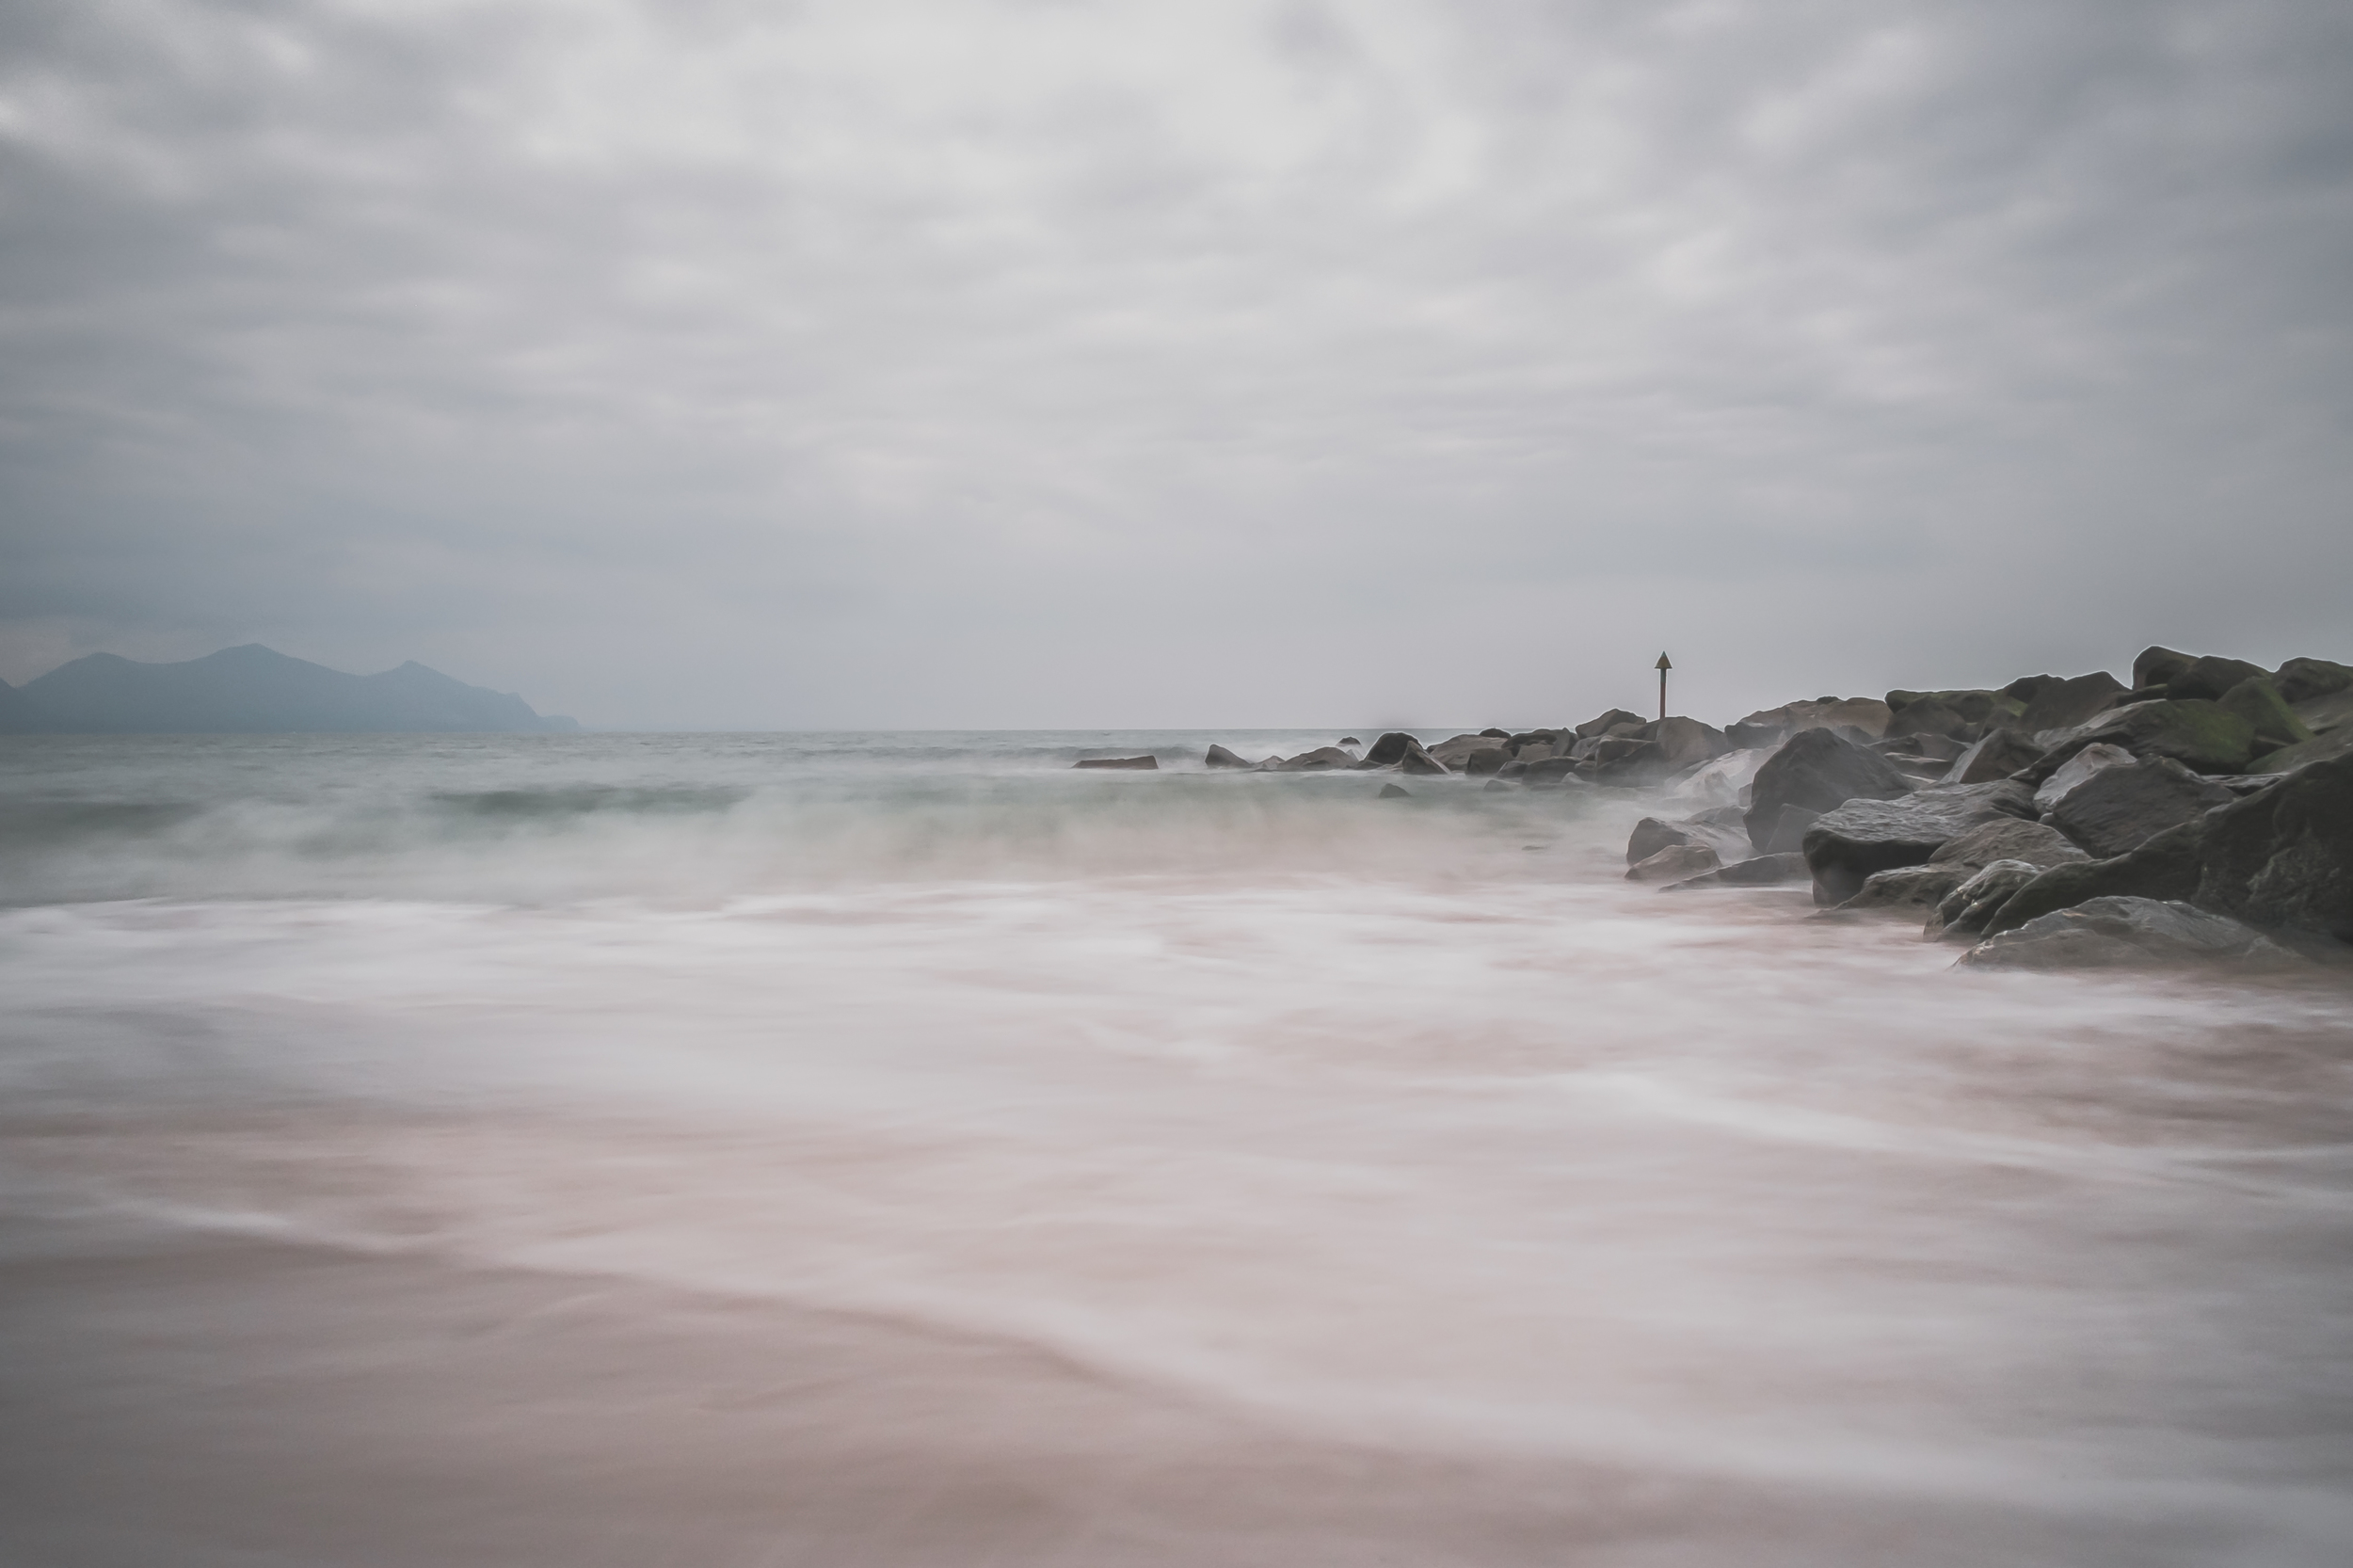 Dinas Dinlle - X-Pro1 + 18mm f/2 & B+W 110 ND Filter @ f/16. ISO200. 3.2 second exposure.